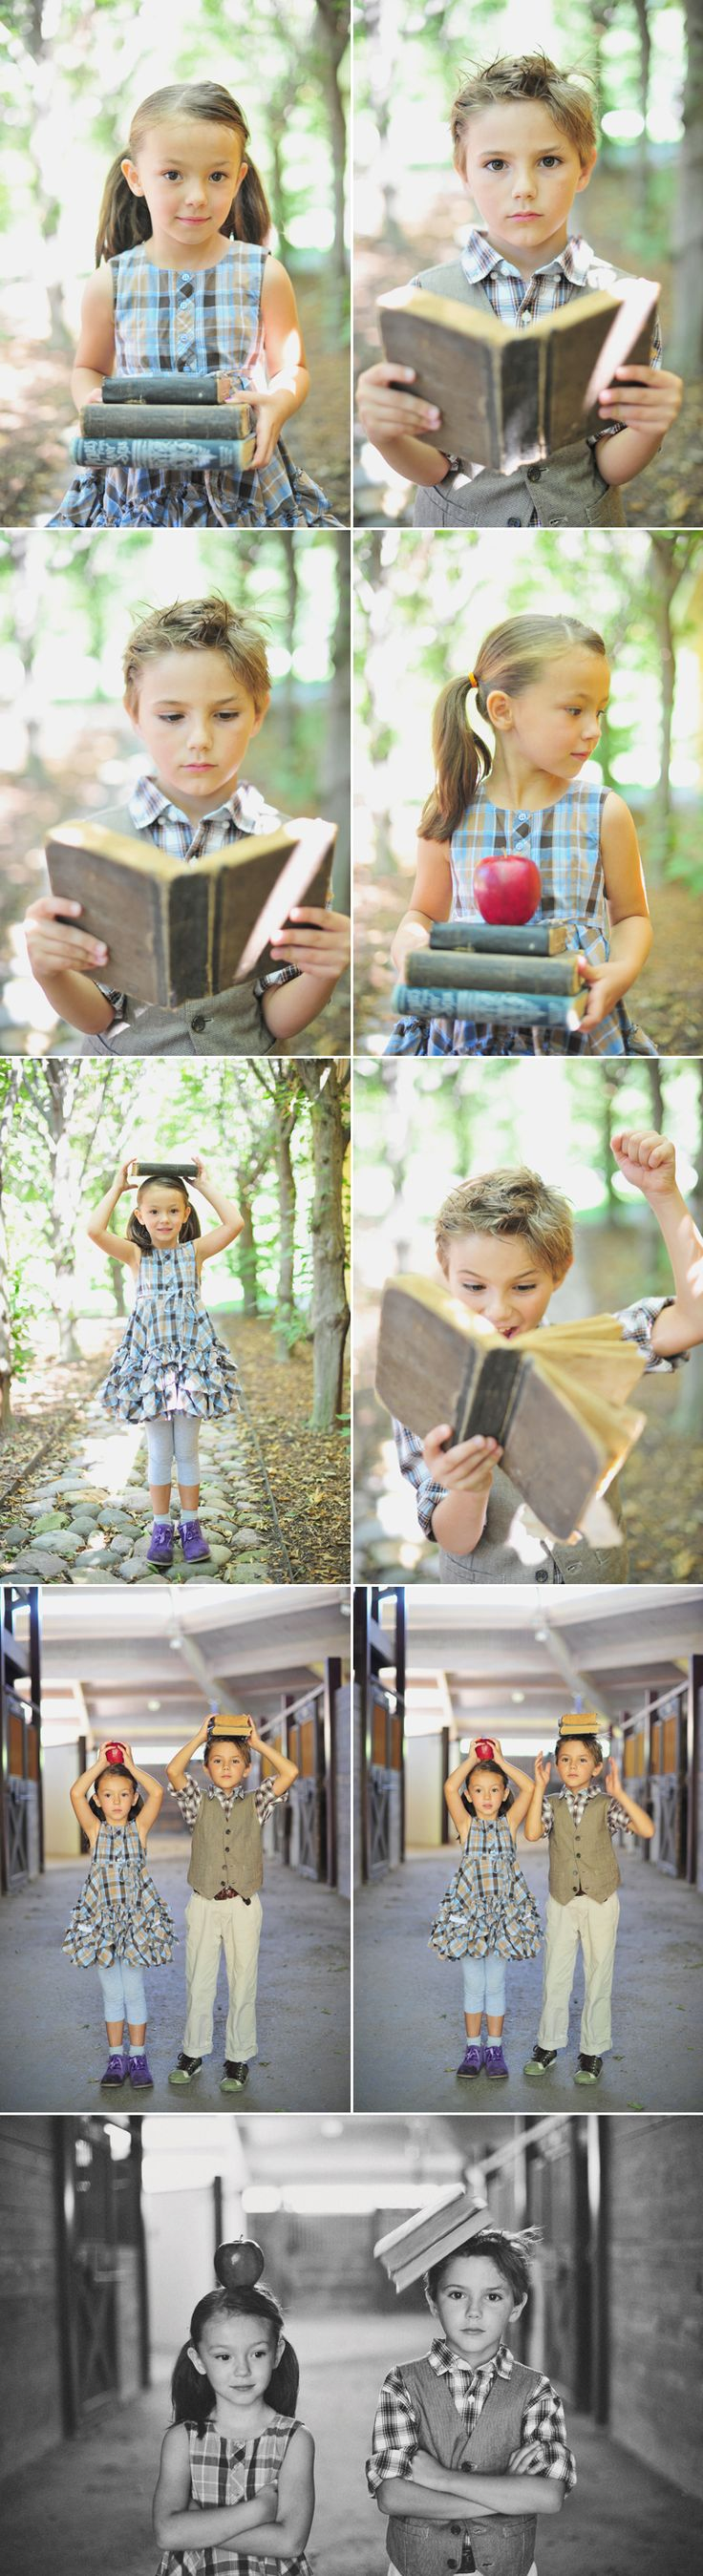 a little book inspiration for this shoot! #crewcuts #kids #photography